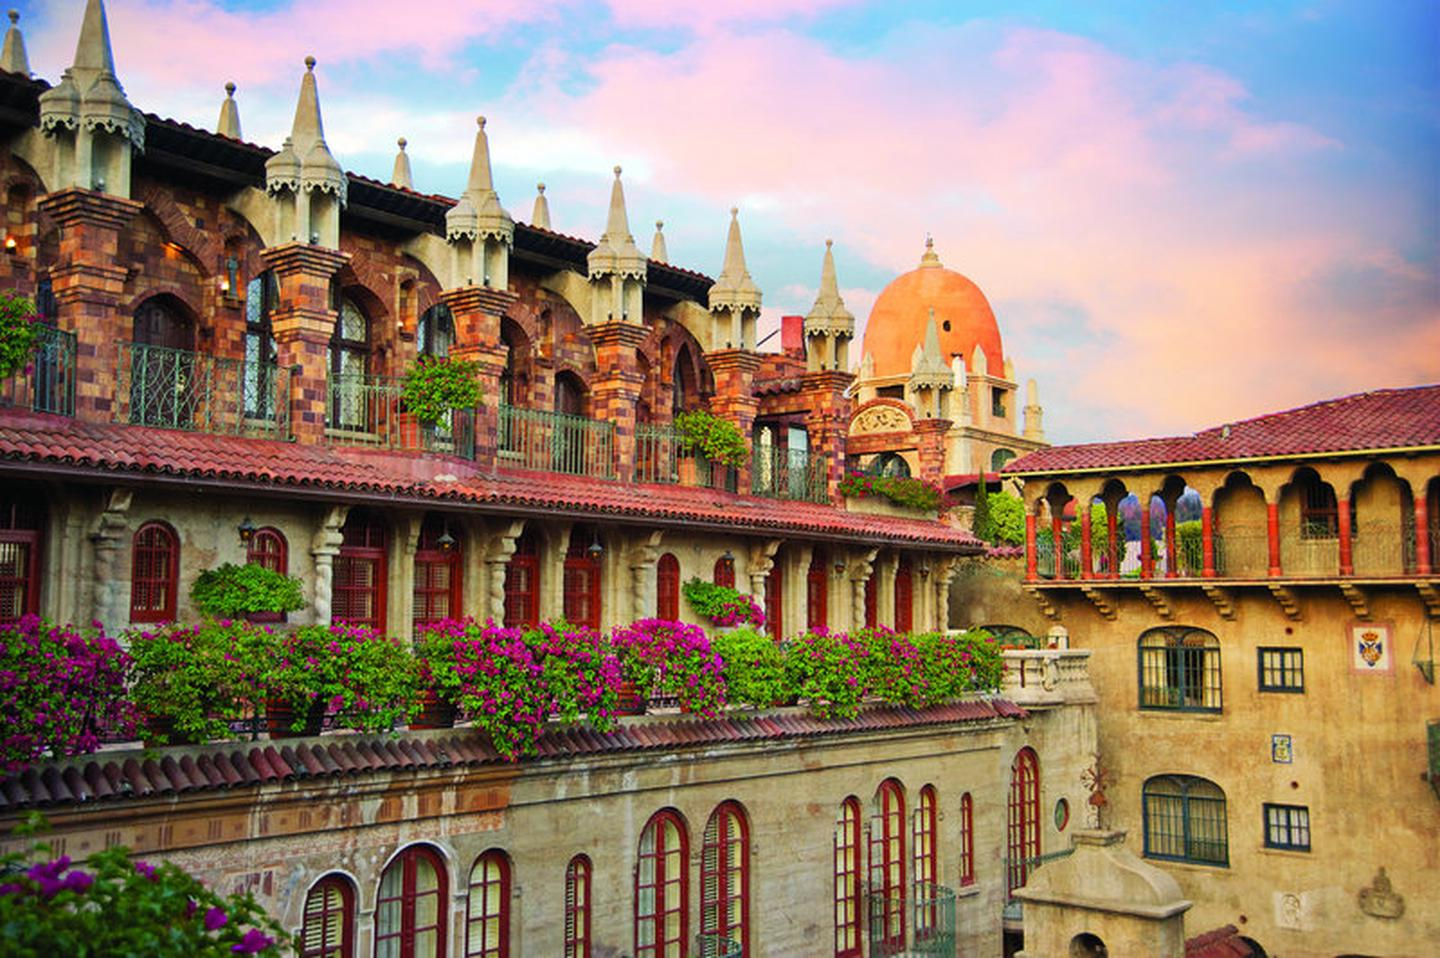 The Mission Inn Hotel and Spa